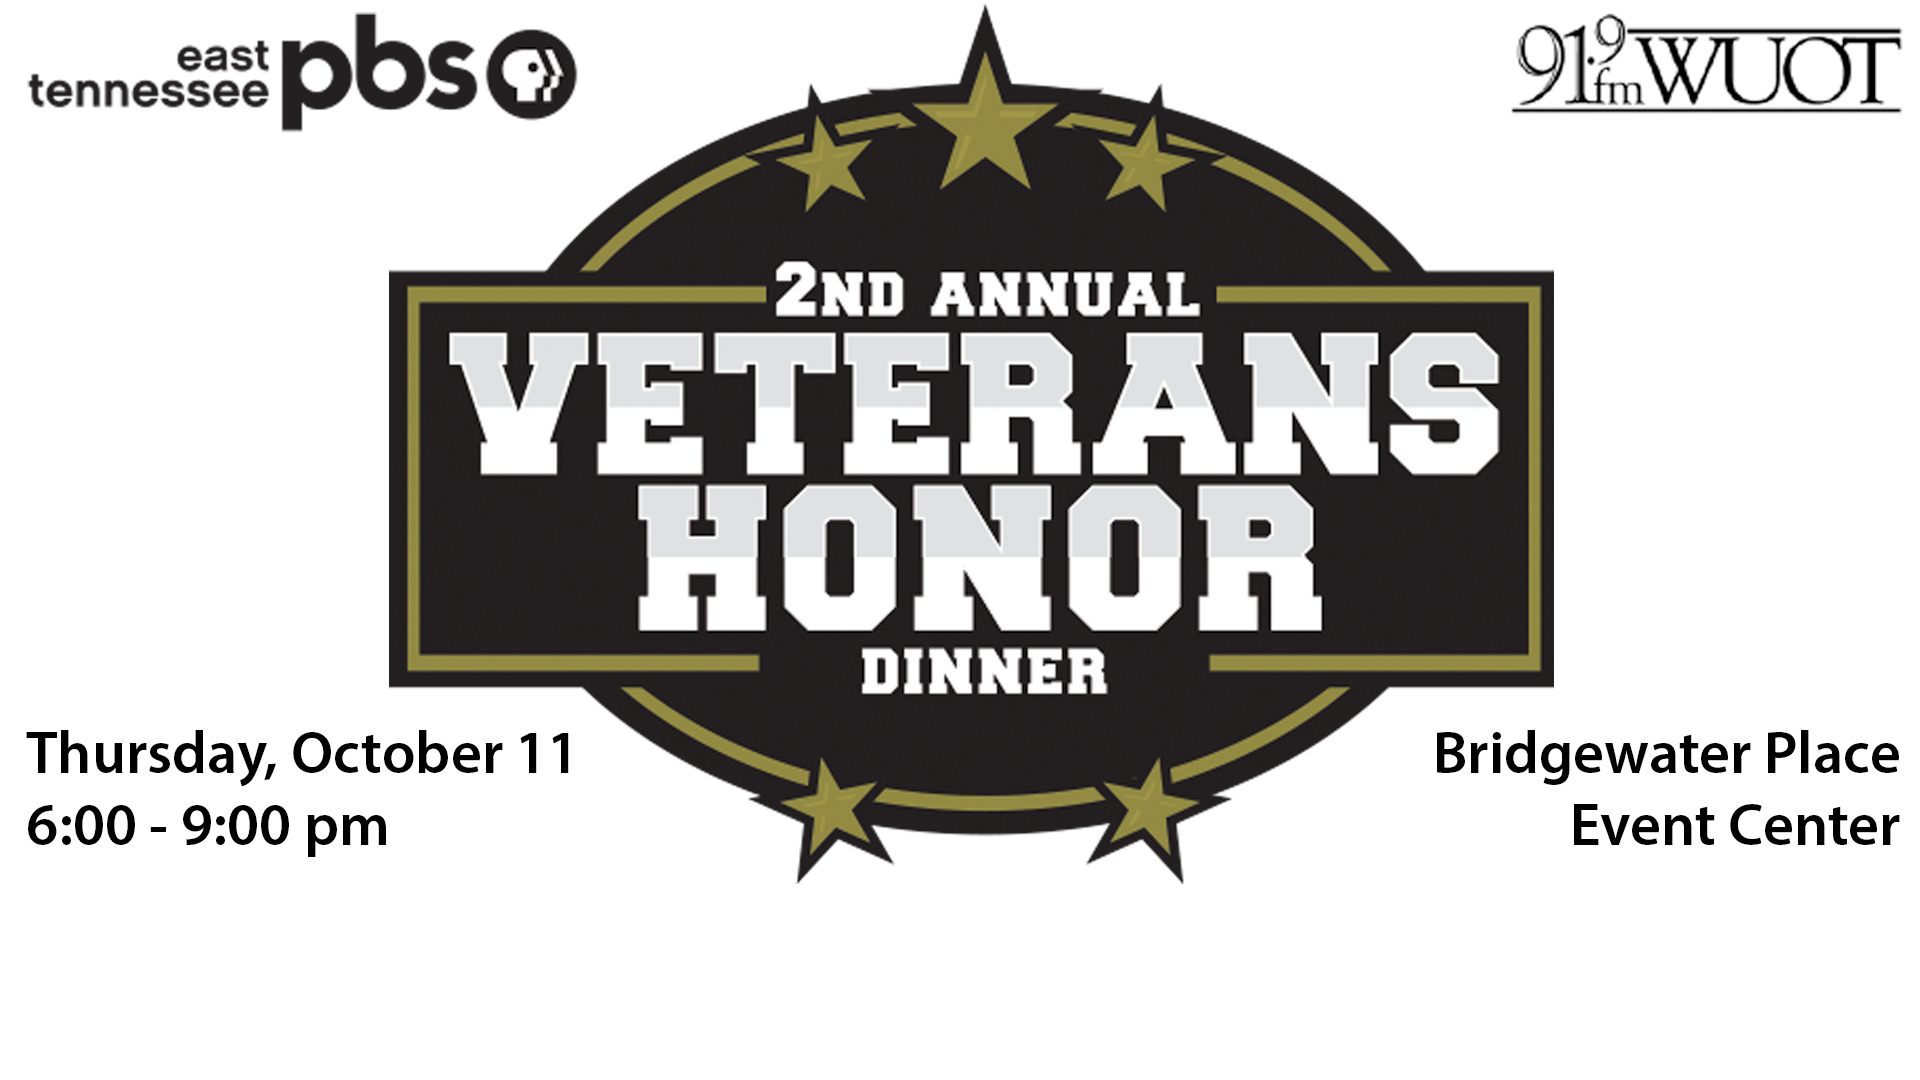 2nd Annual Veterans Honor Dinner